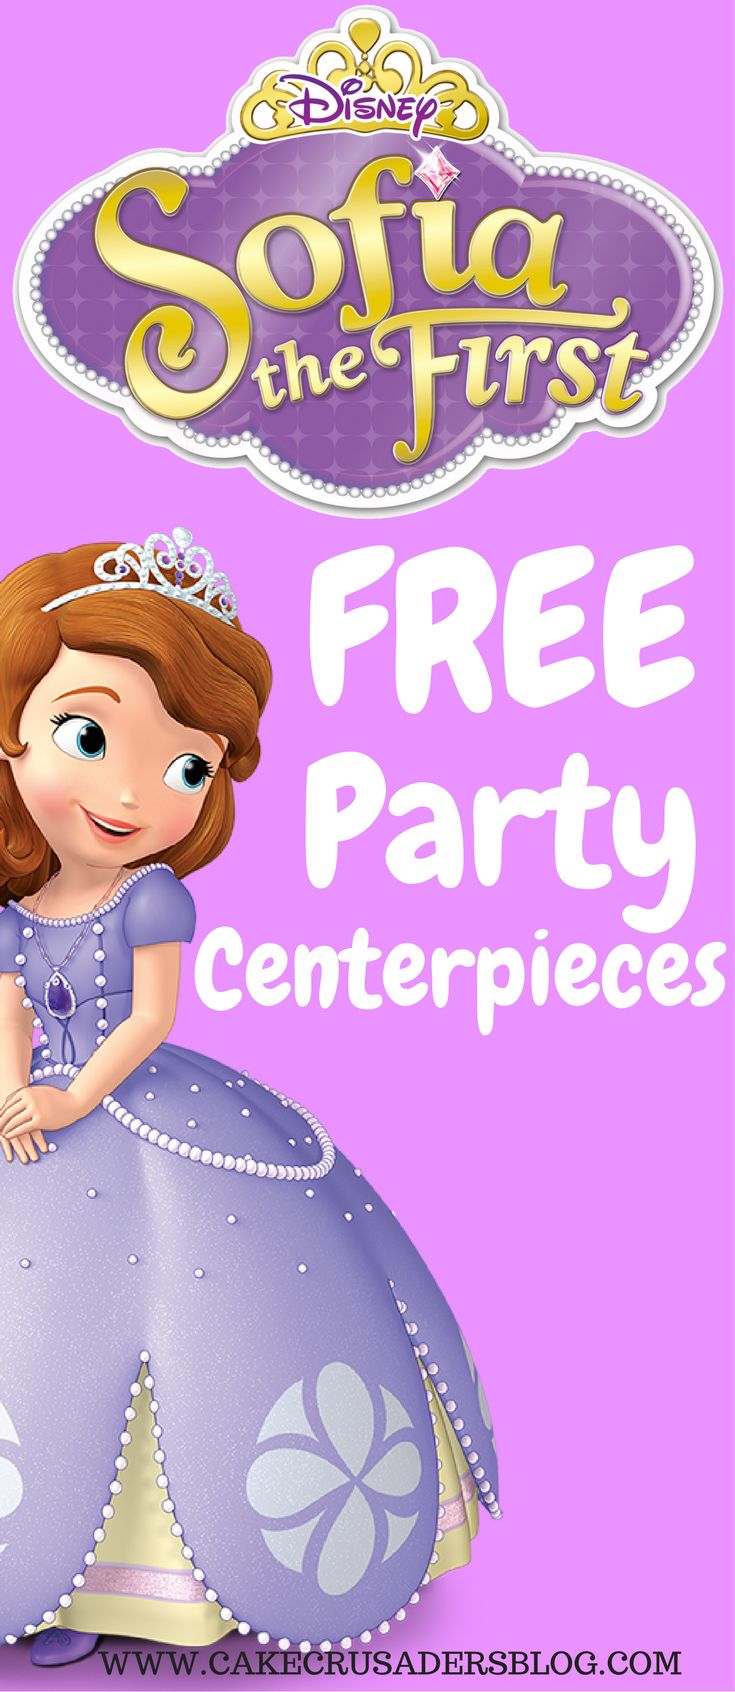 Check out these Free DIY Sofia the First Character Birthday party ideas centerpieces!  These are awesome as table decorations.